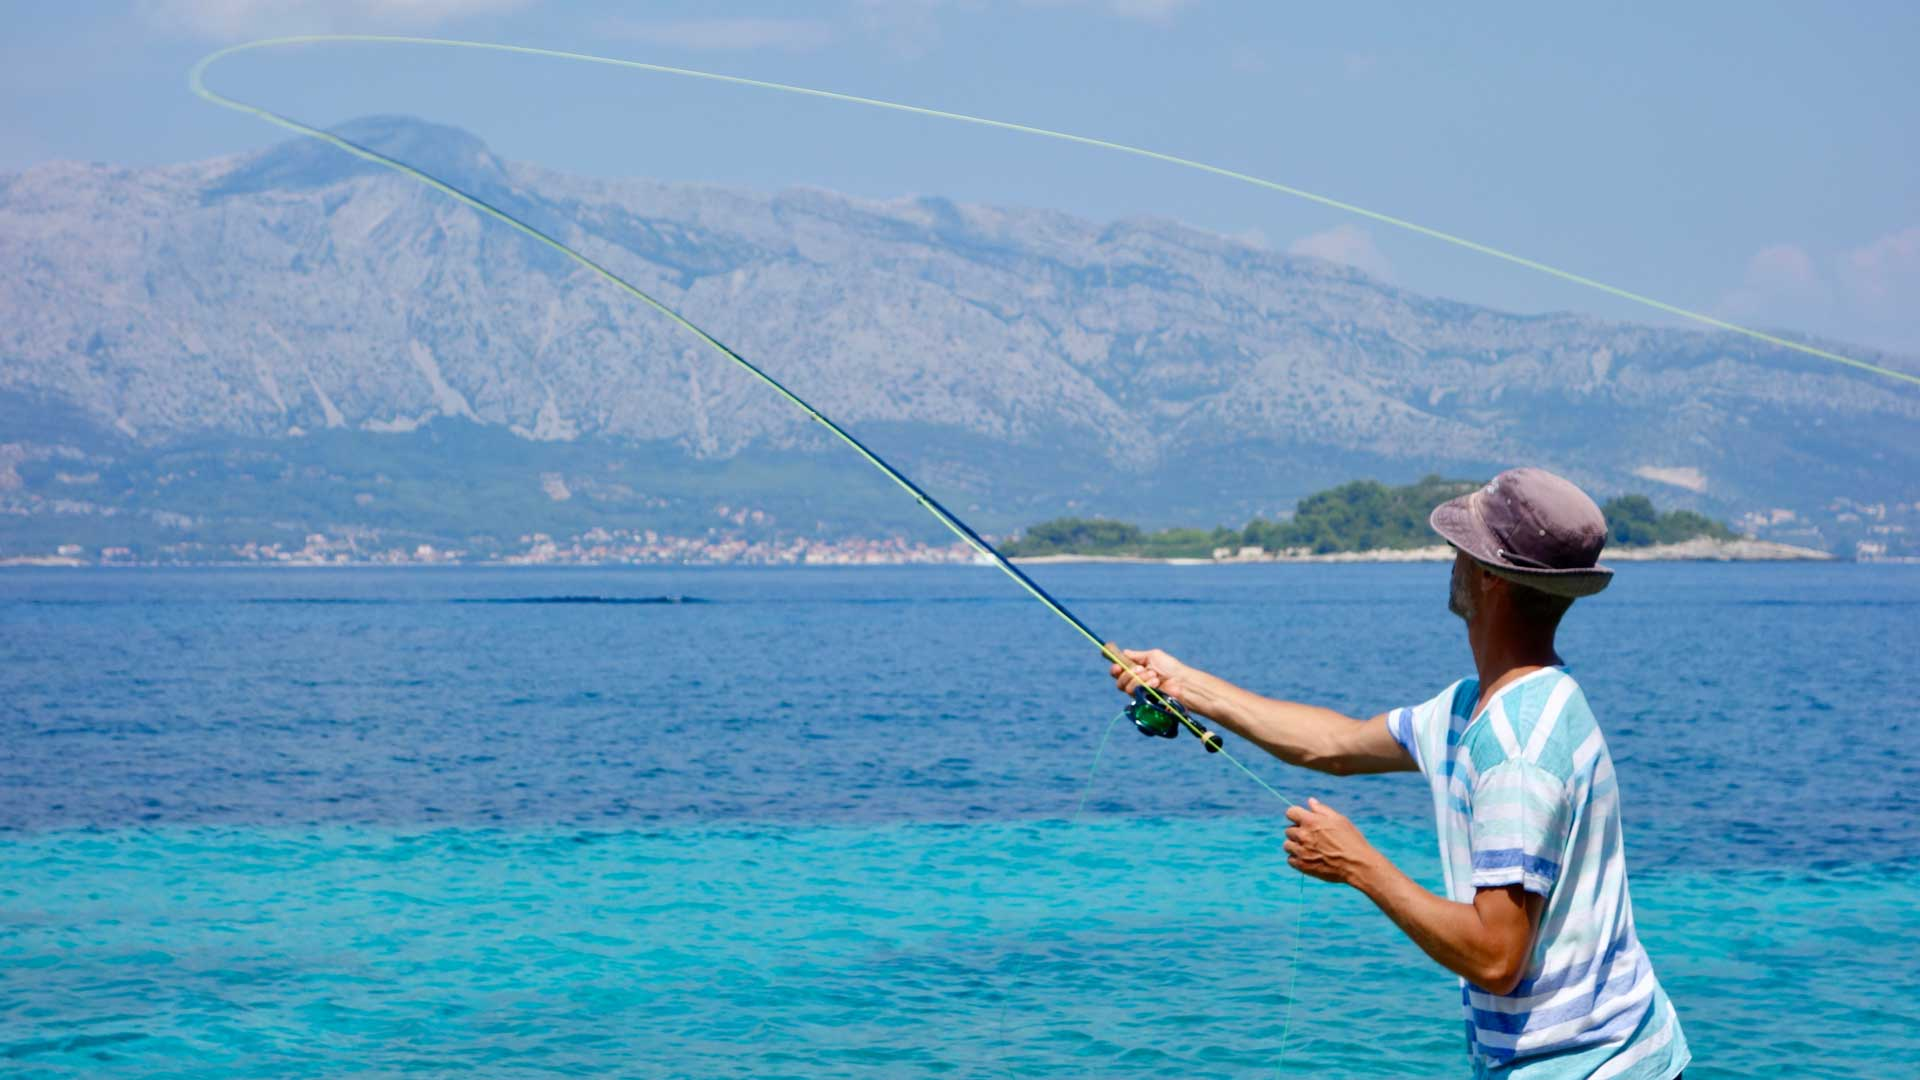 Fly Fishing in the Mediterranean Sea